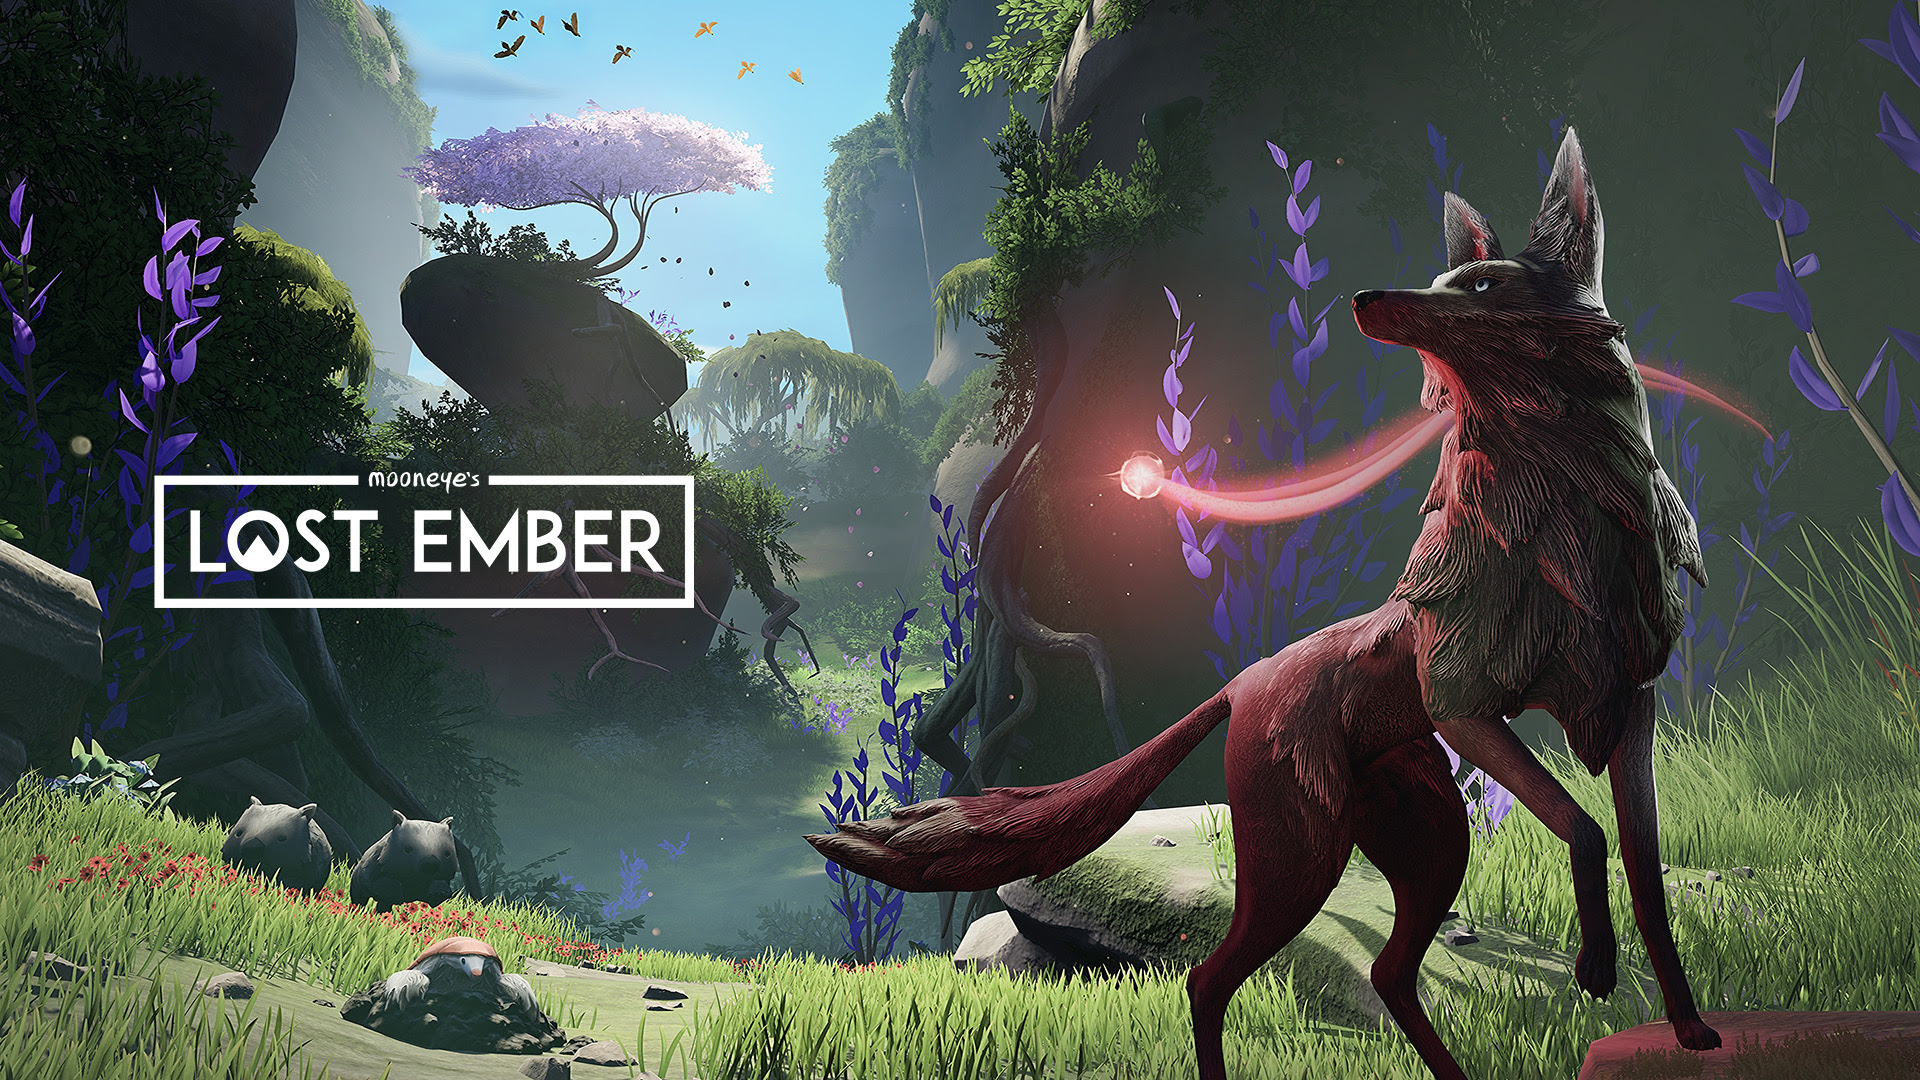 Lost Ember brings fantastical animal switching adventure to Xbox One, PS4 and PC